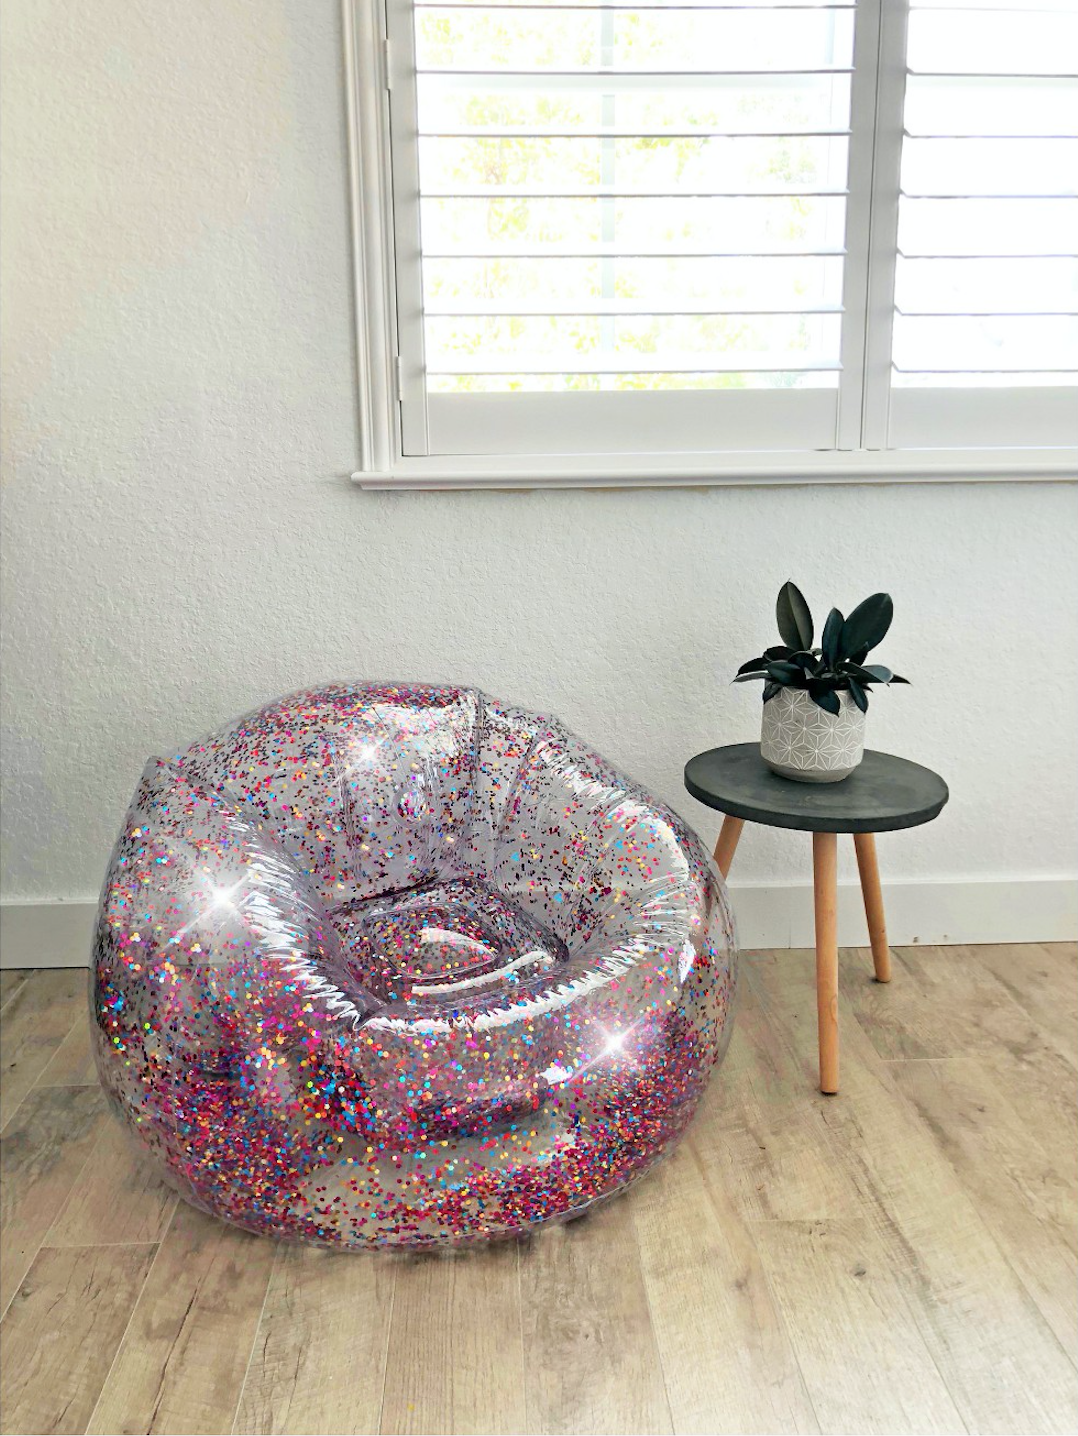 Target & Target Sells Inflatable Furniture - Air Candy Inflatable Furniture